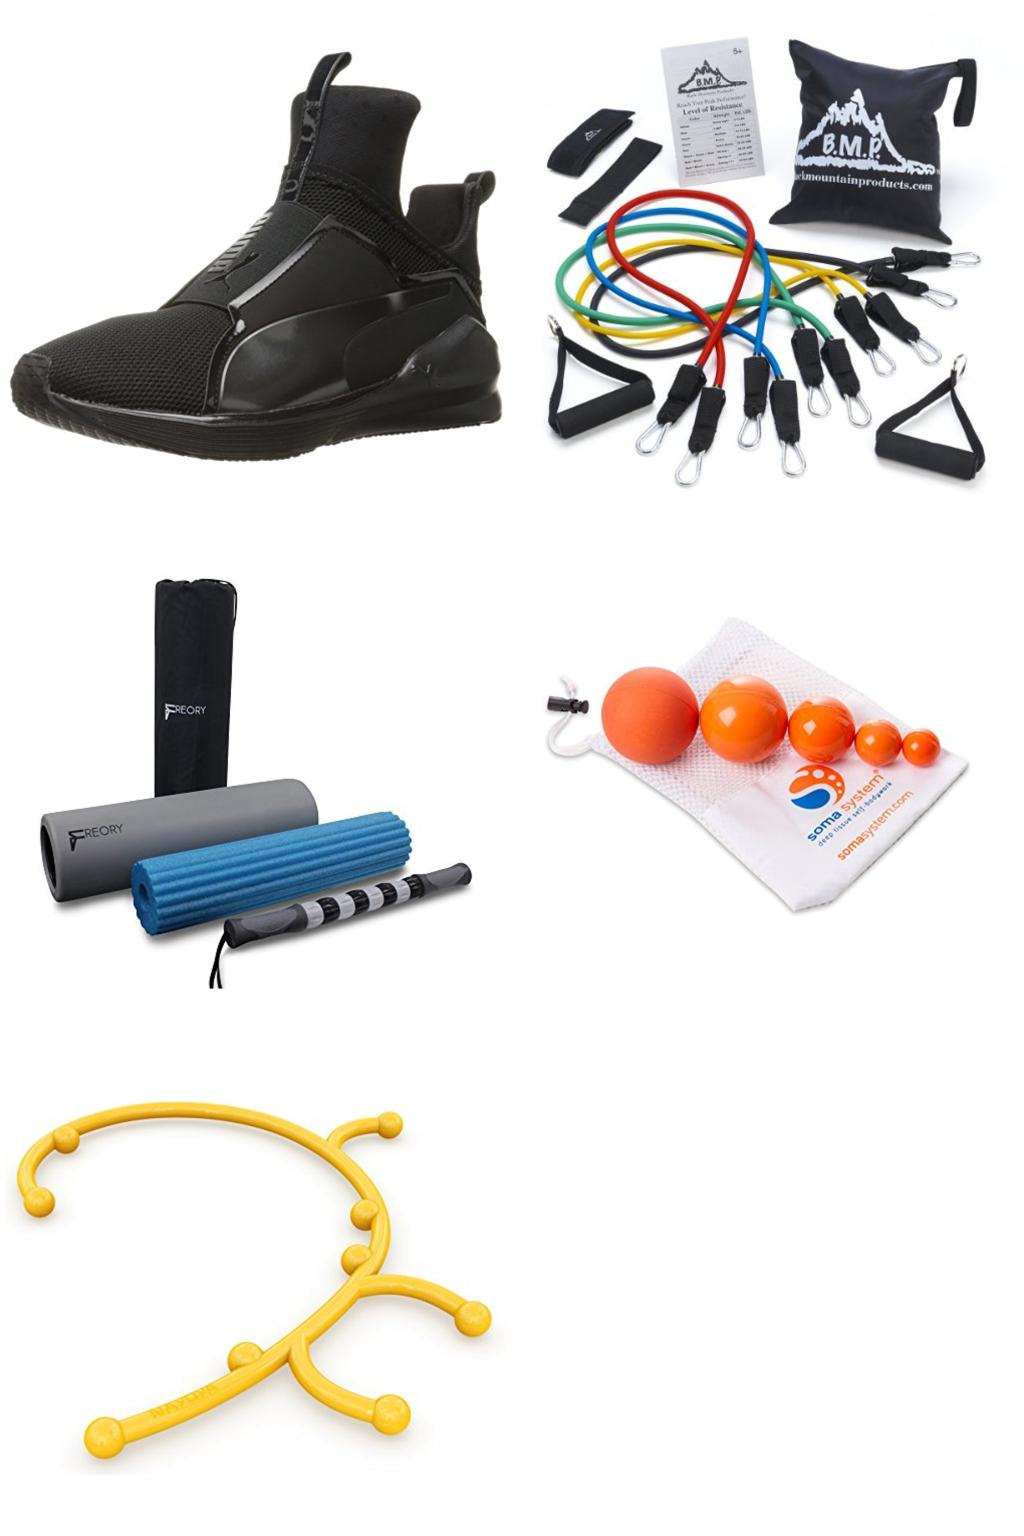 holiday-gift-guide-for-the-fitness-enthusiast-a8682053ab2e1b39e90b0be1933f27e2.jpg